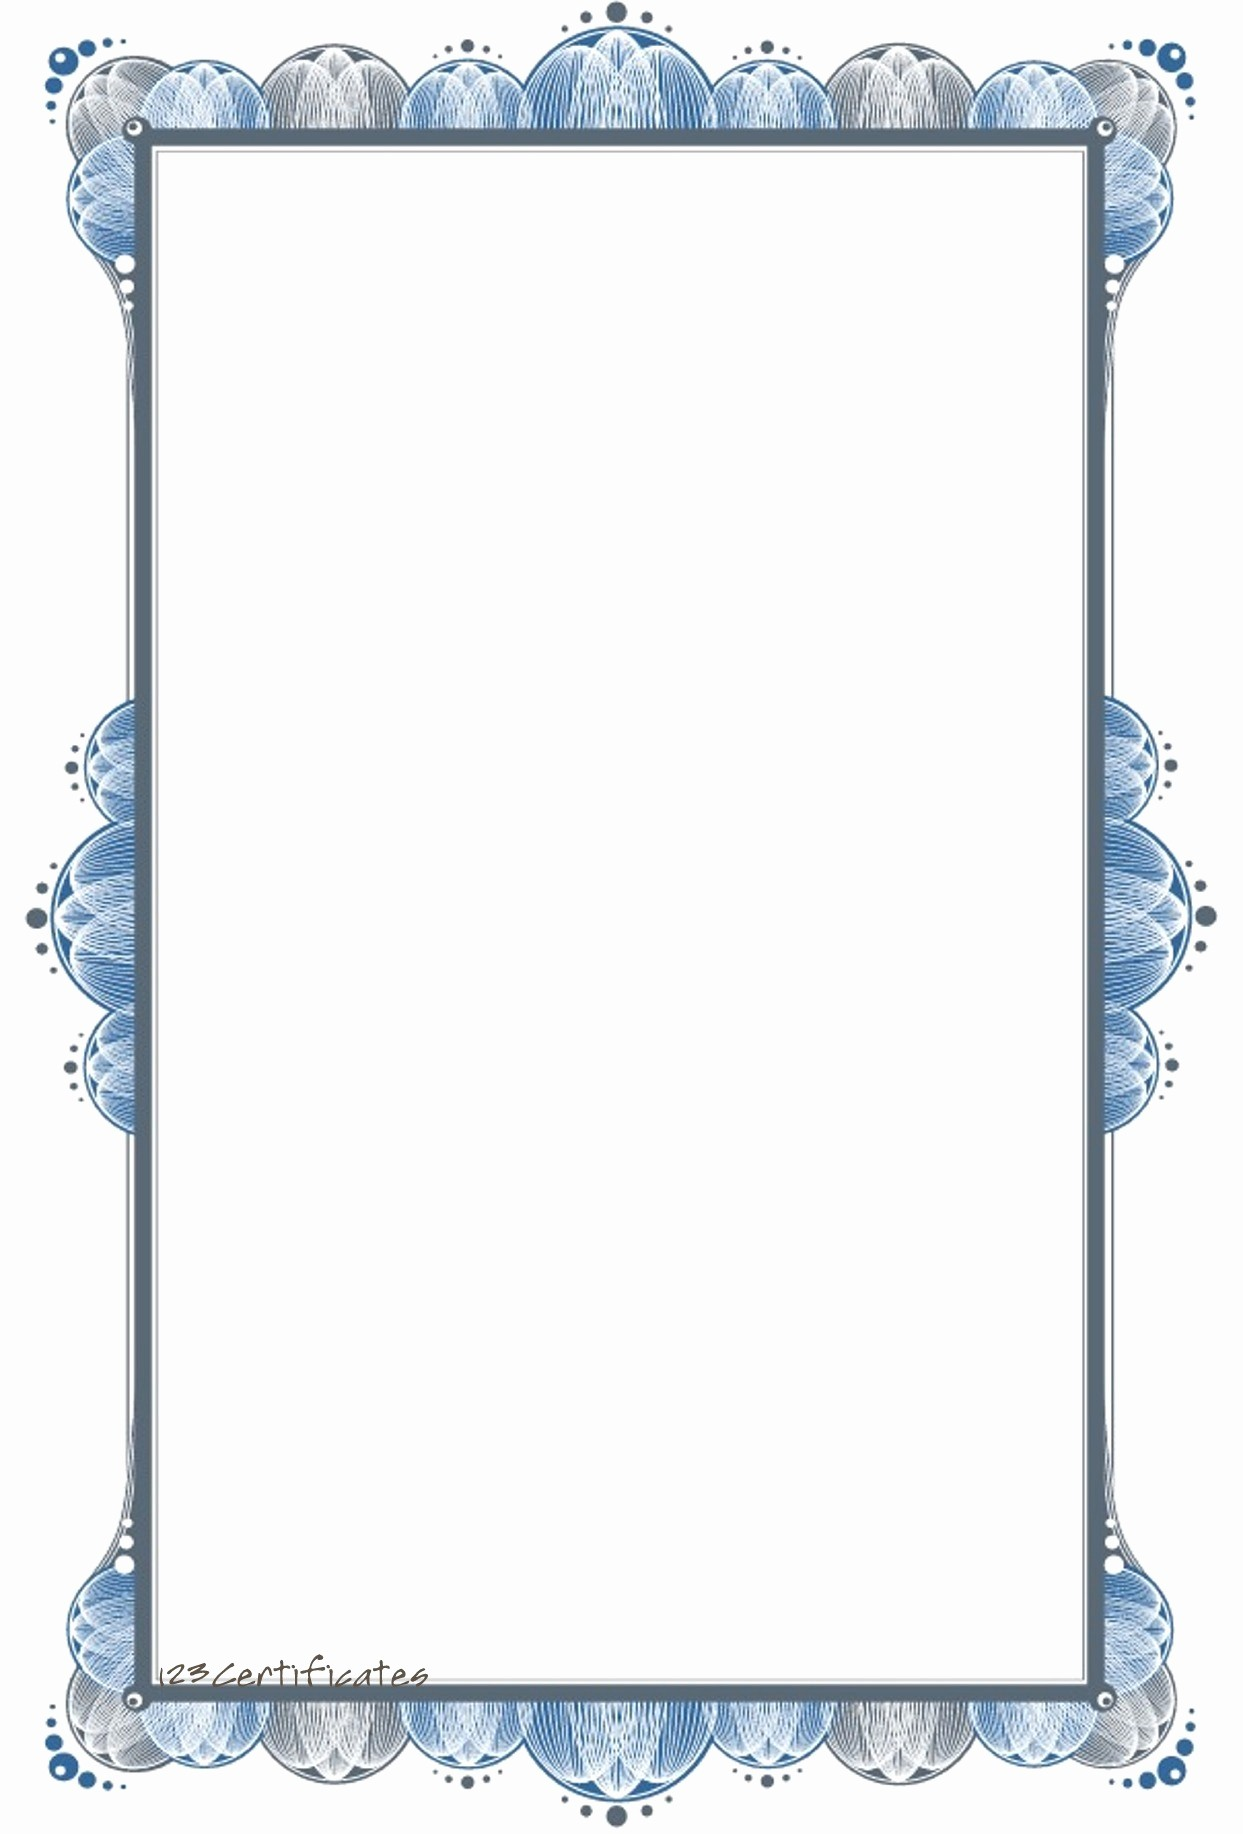 Free Printable Blank Certificate Borders Best Of Professional Border Templates